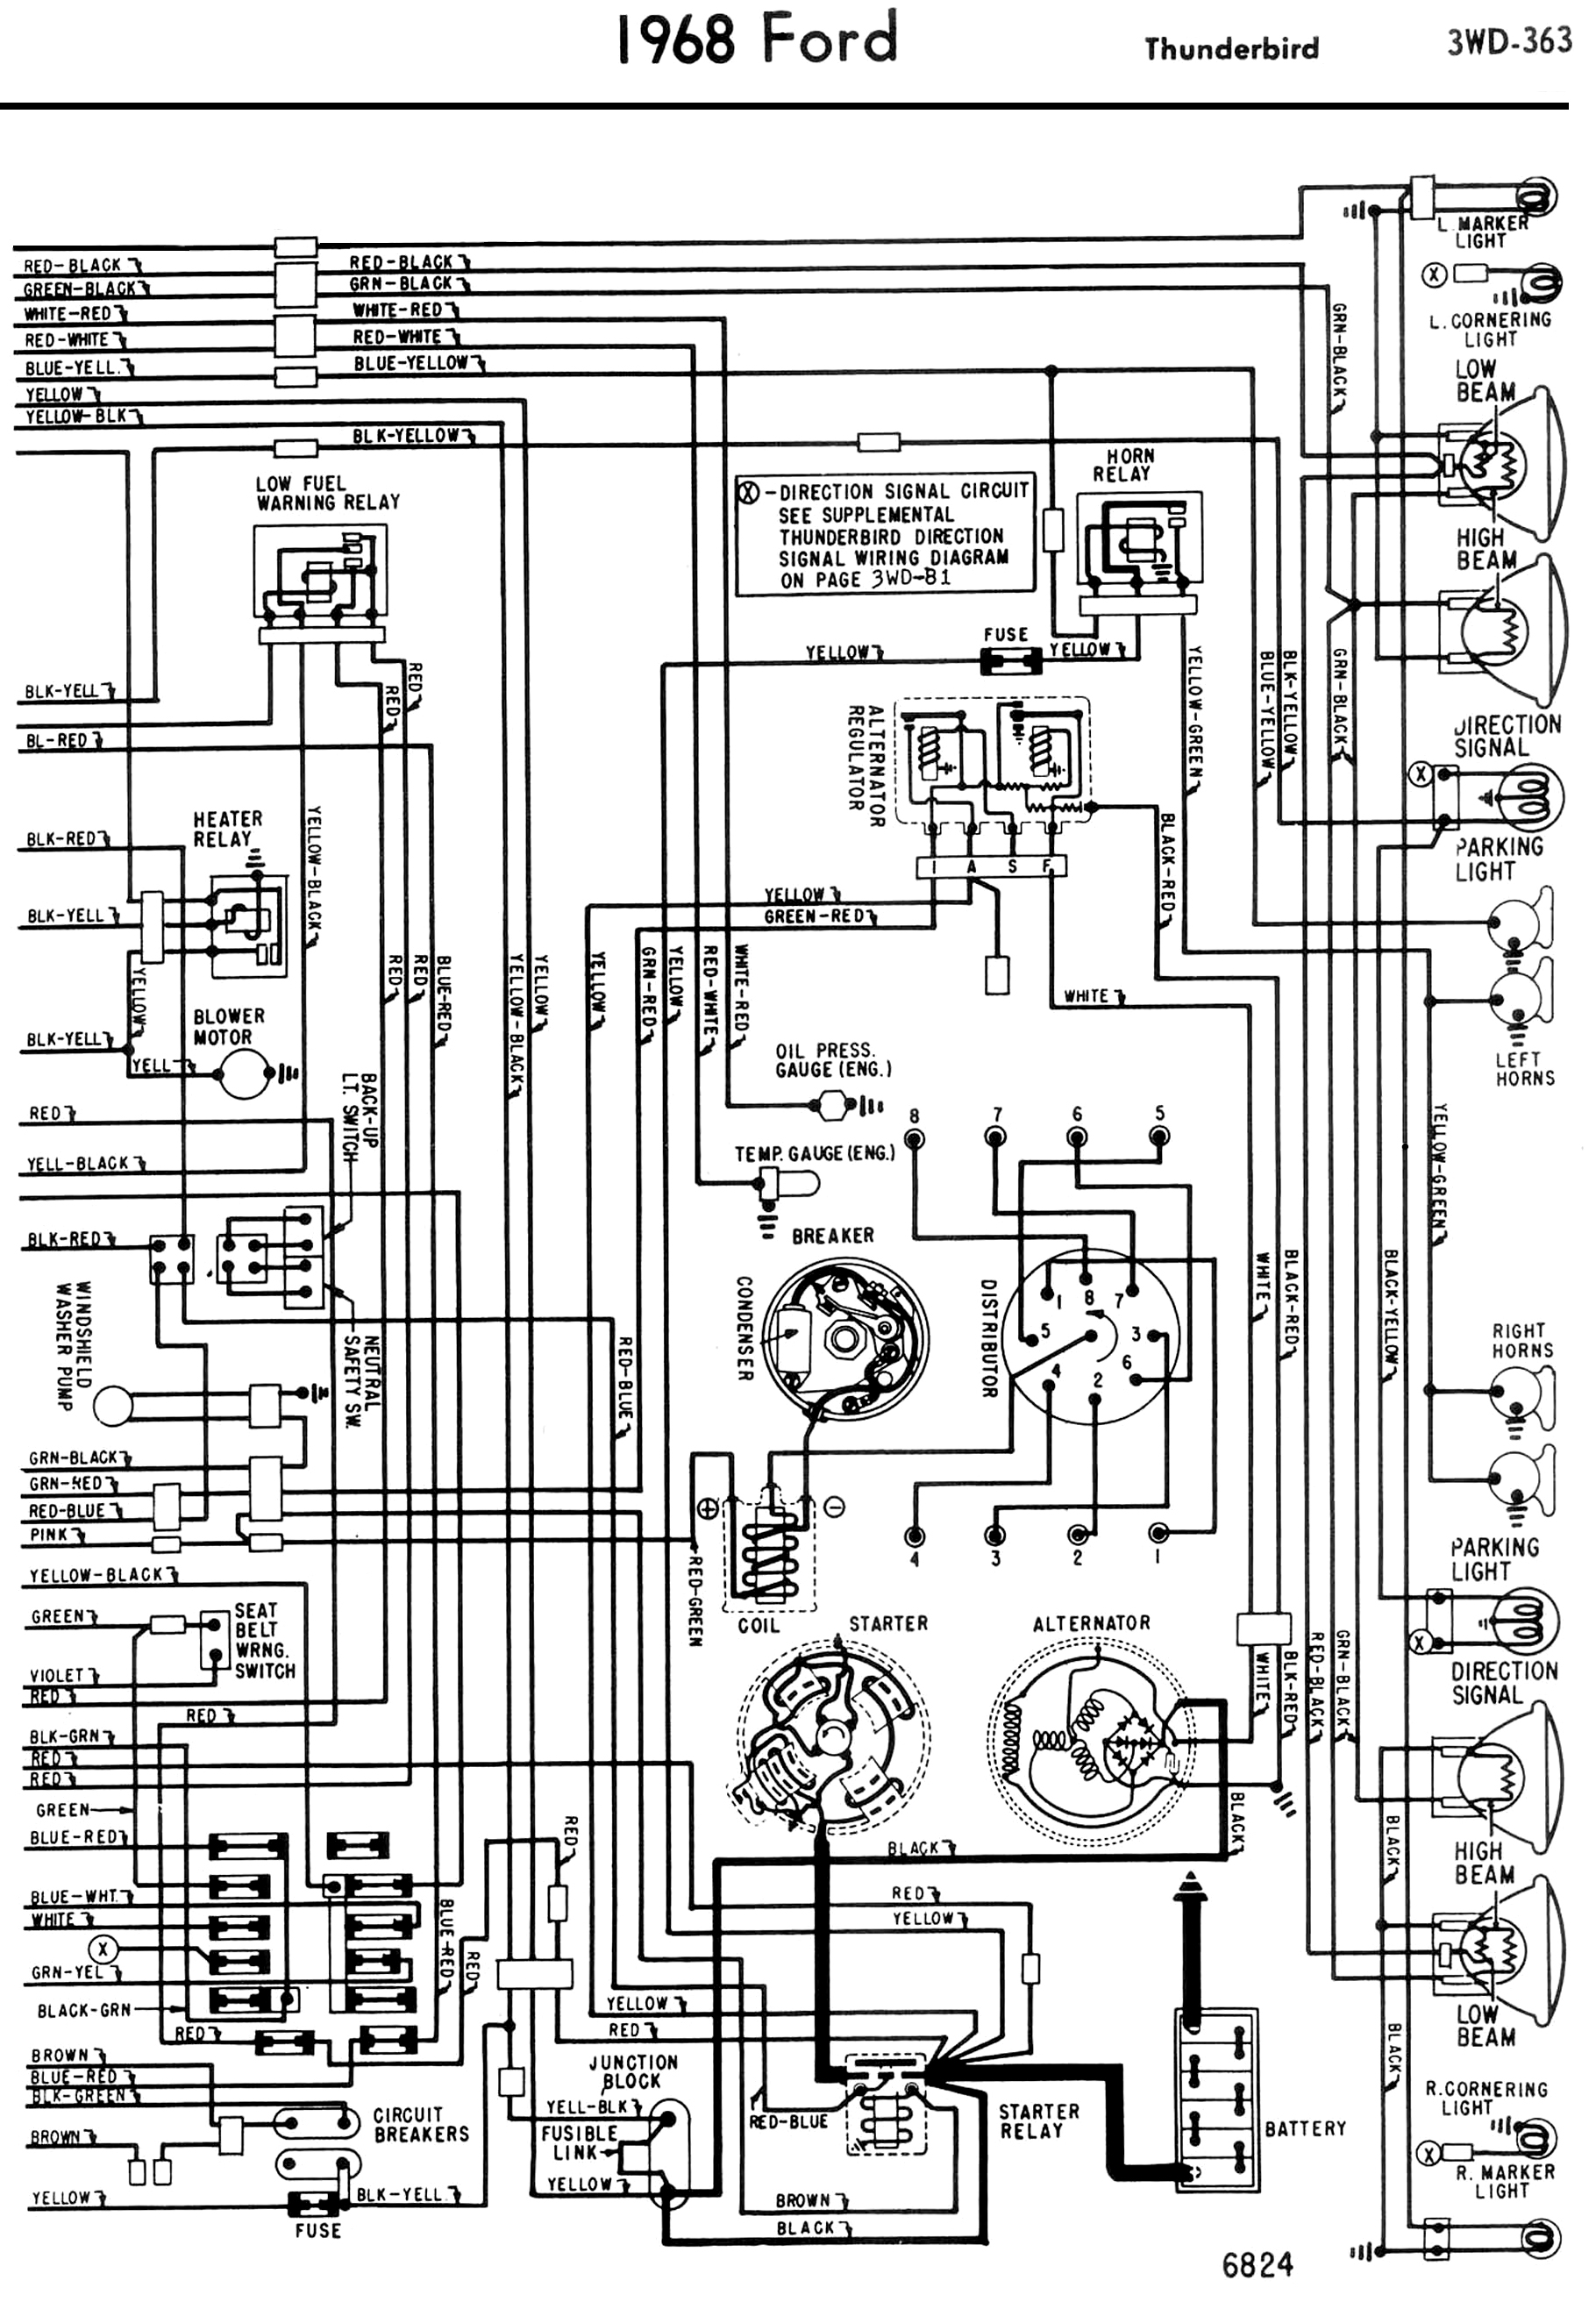 hight resolution of sequential tail light wiring diagram get free image 1968 impala kickdown wiring diagram 1968 impala